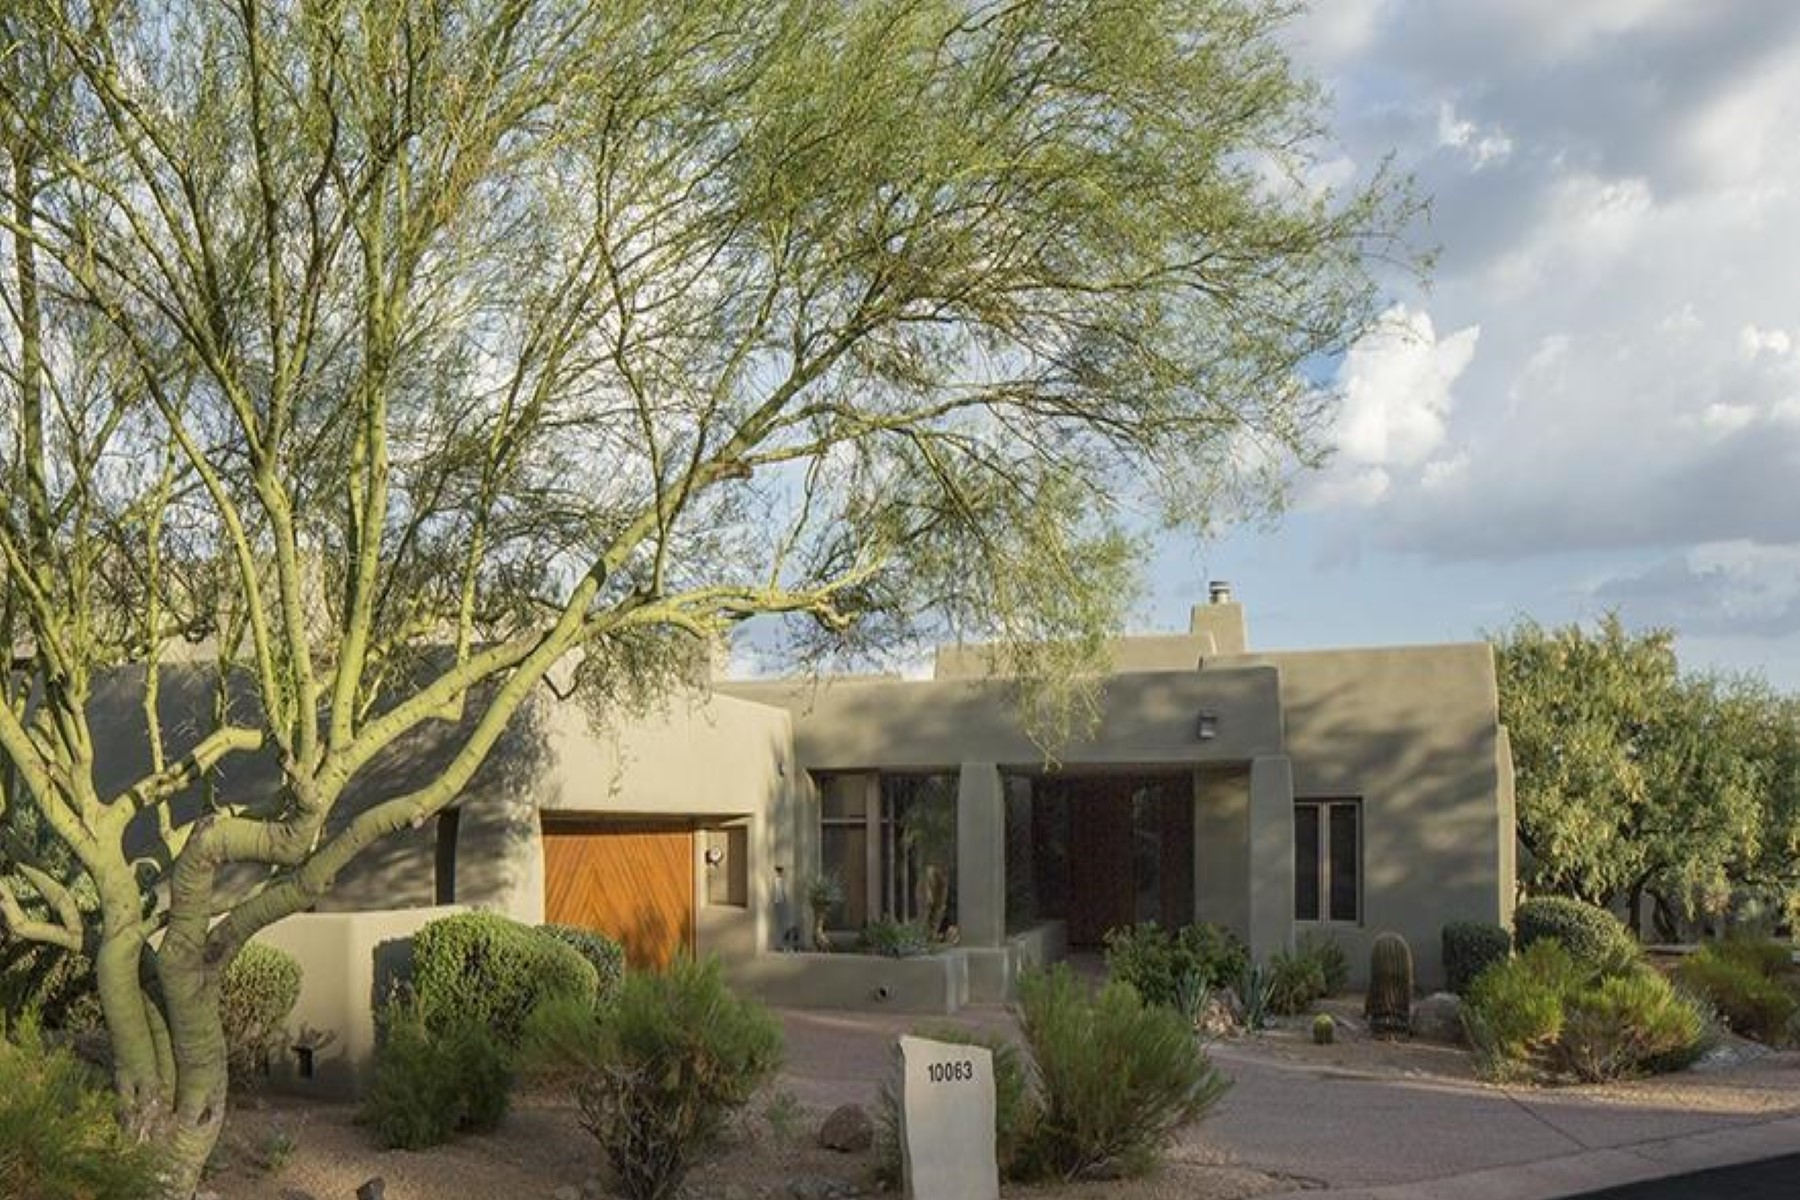 Condominium for Sale at Two master suite Sonoran Cottage with patio 10063 E Graythorn Dr Scottsdale, Arizona 85262 United States